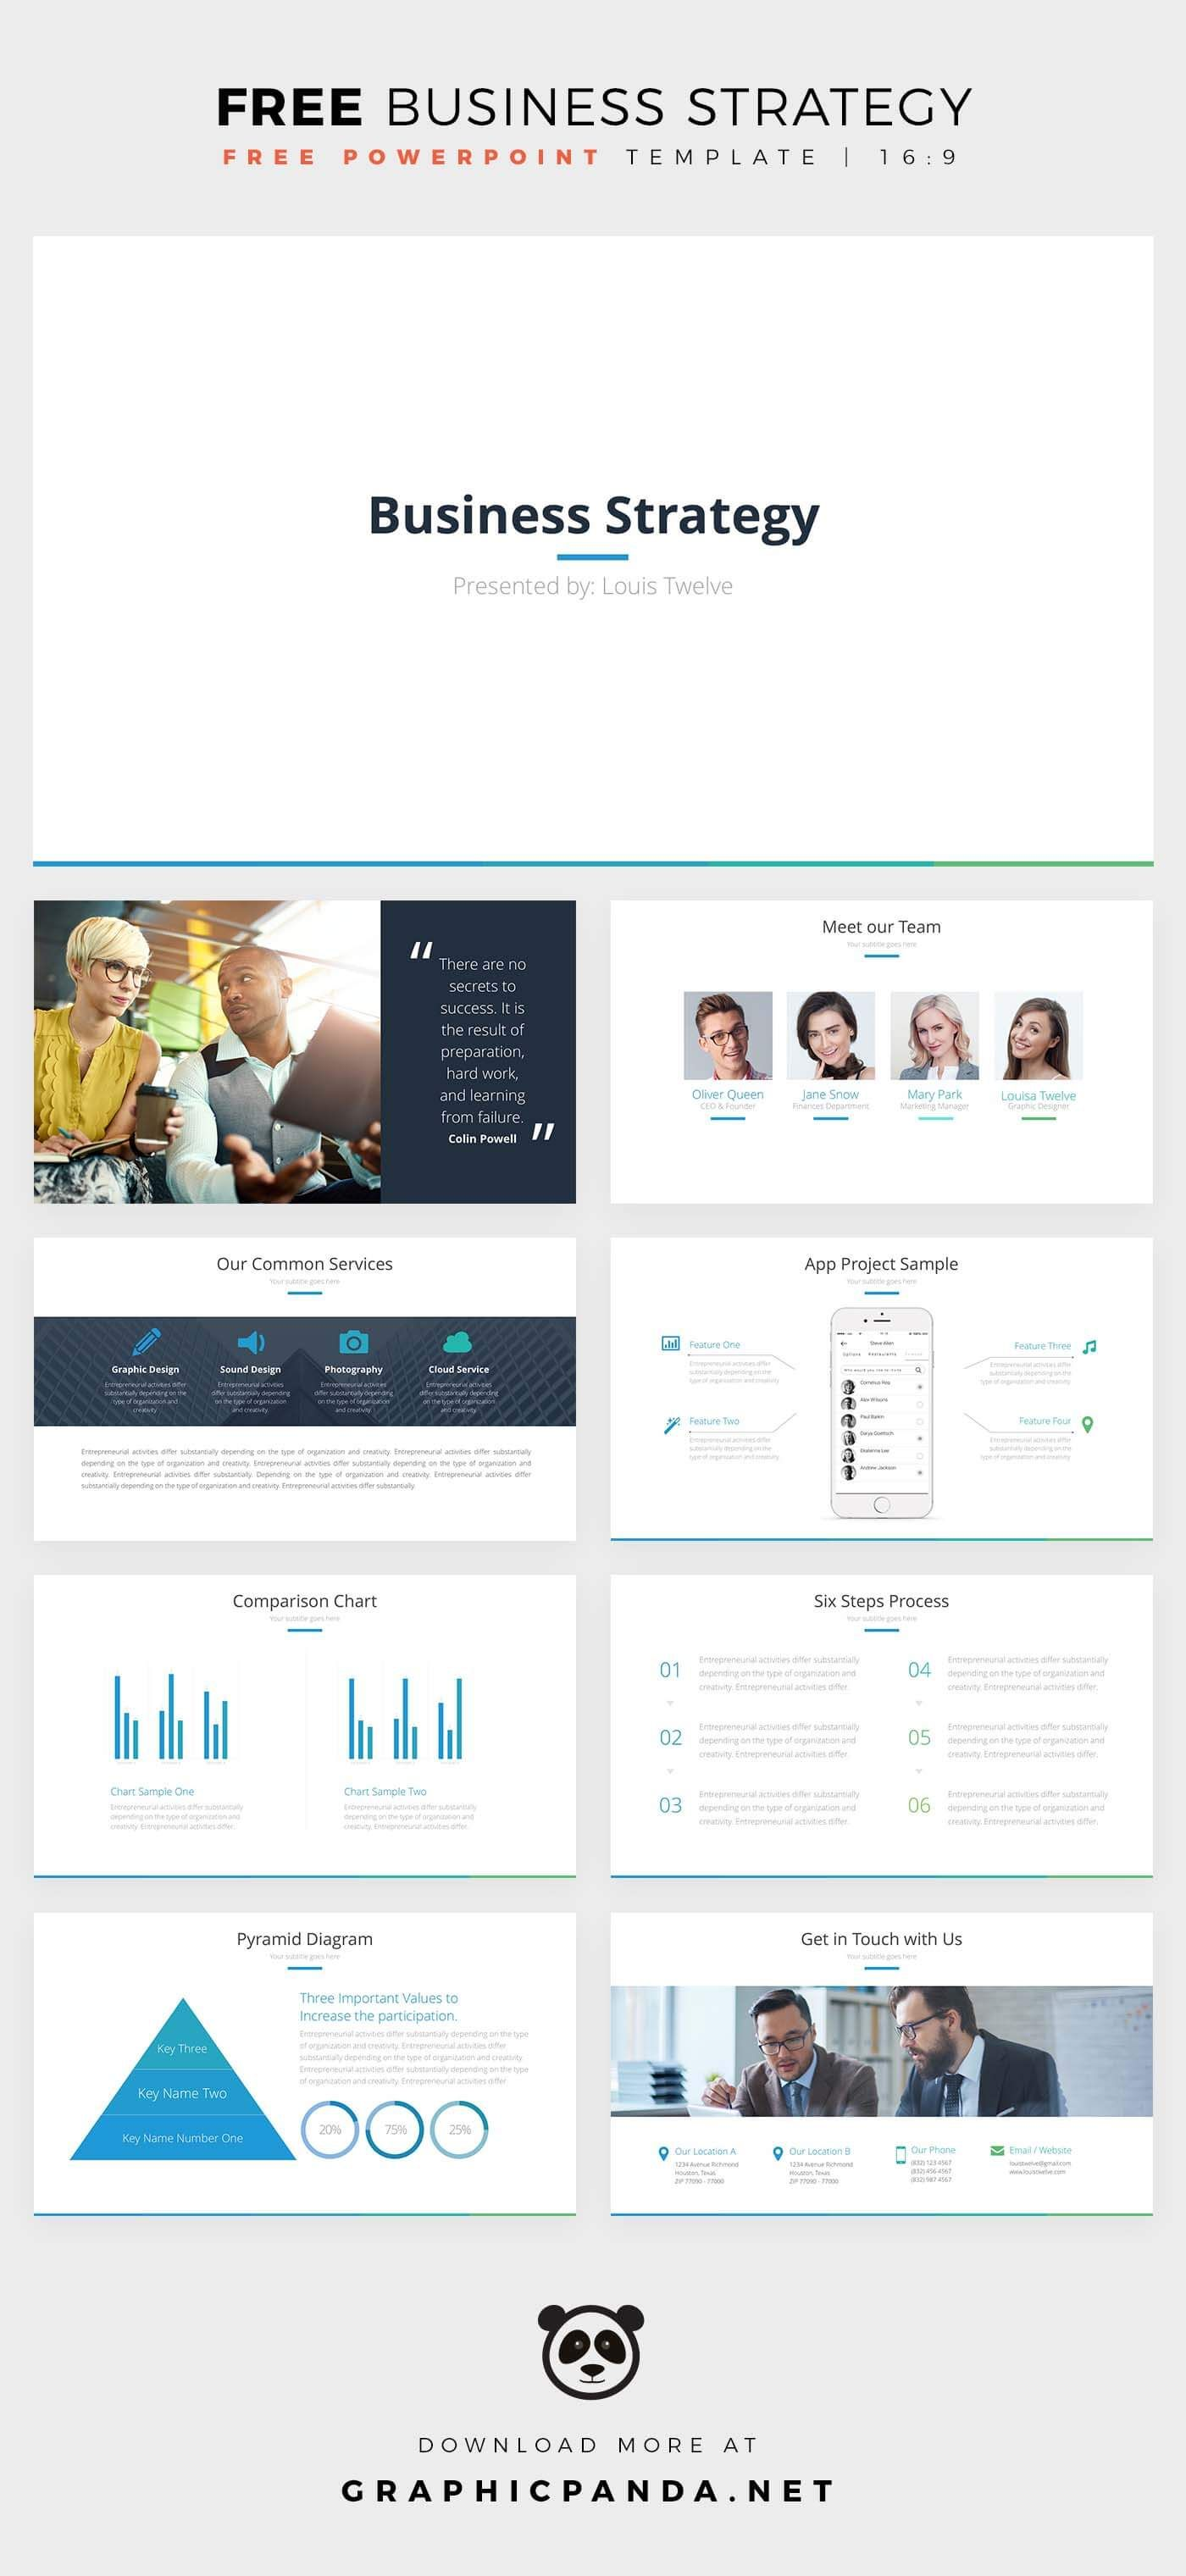 Business Strategy Powerpoint Is A Template That Is Free And